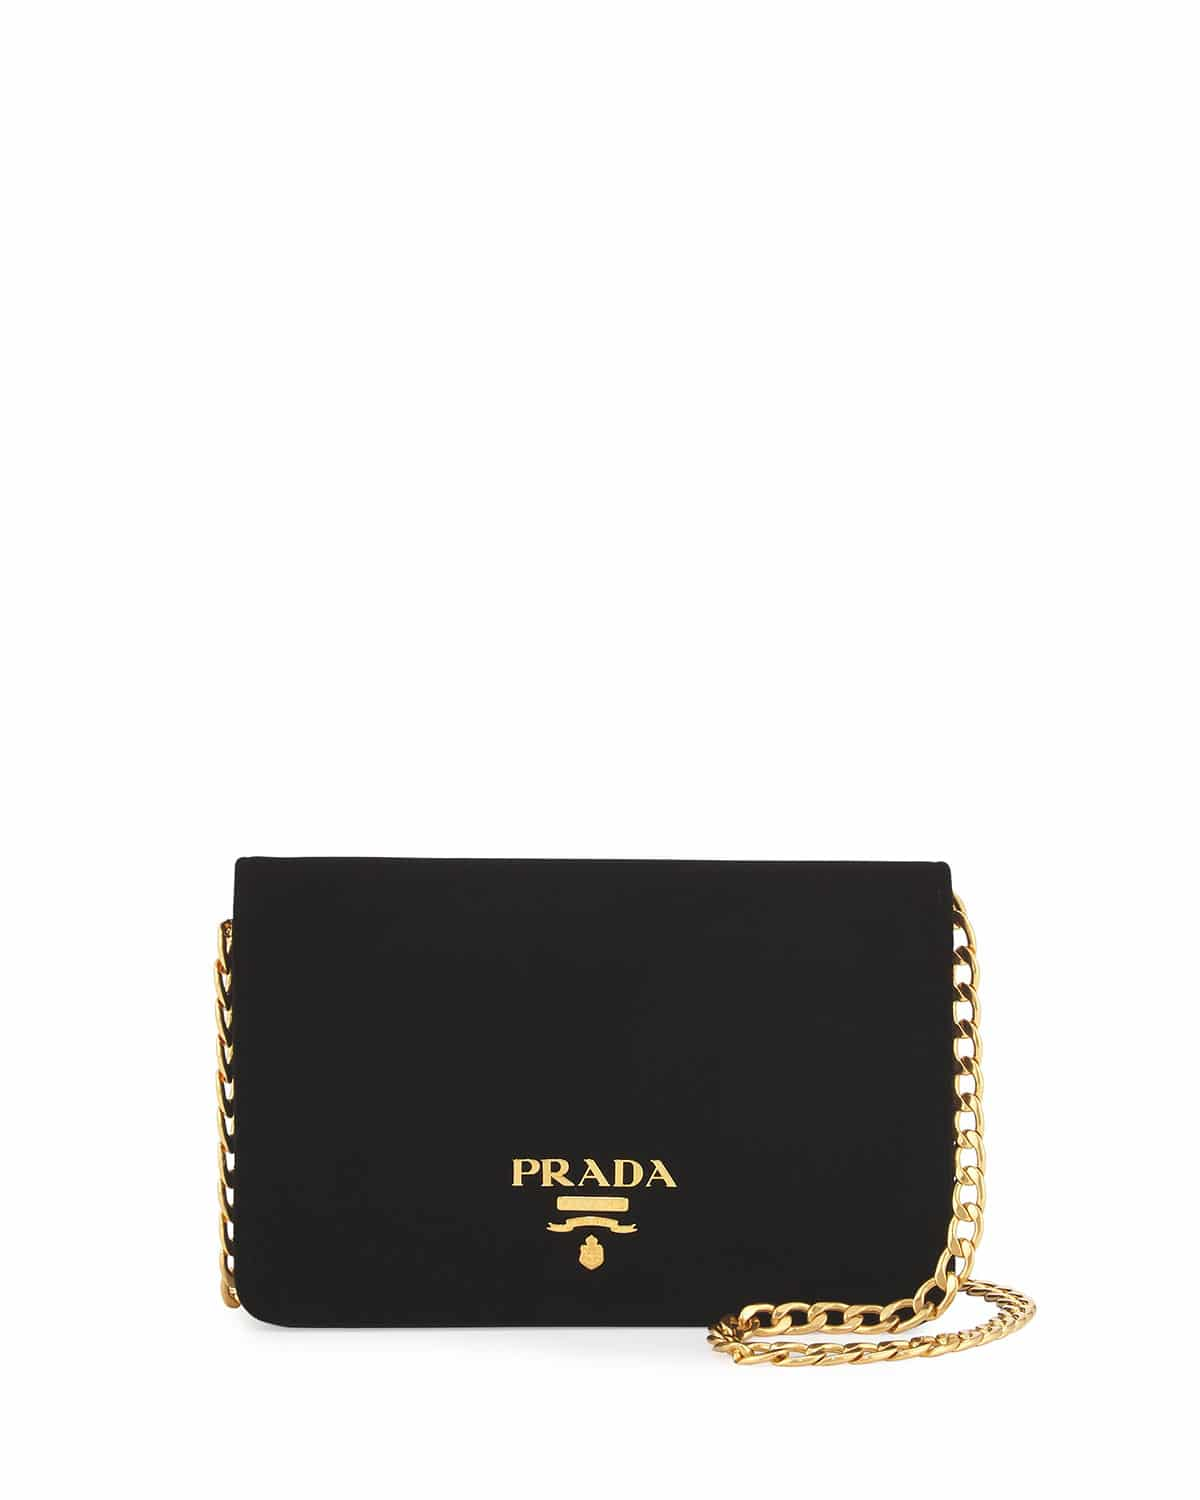 7d0b70e96337 Prada Fall Winter 2016 Bag Collection